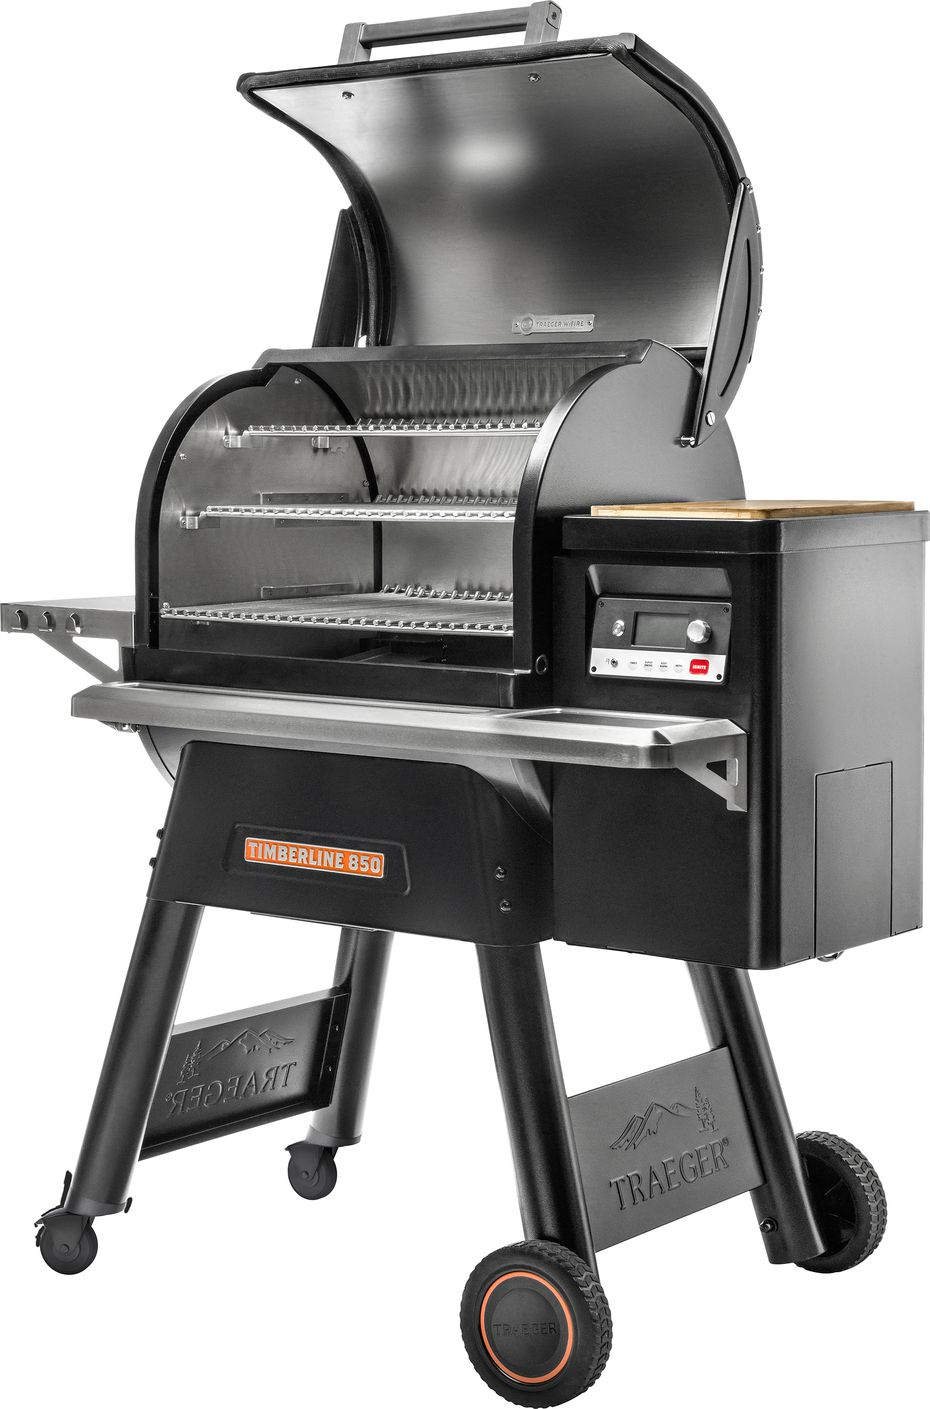 The Traeger Timberline 850 pellet grill.